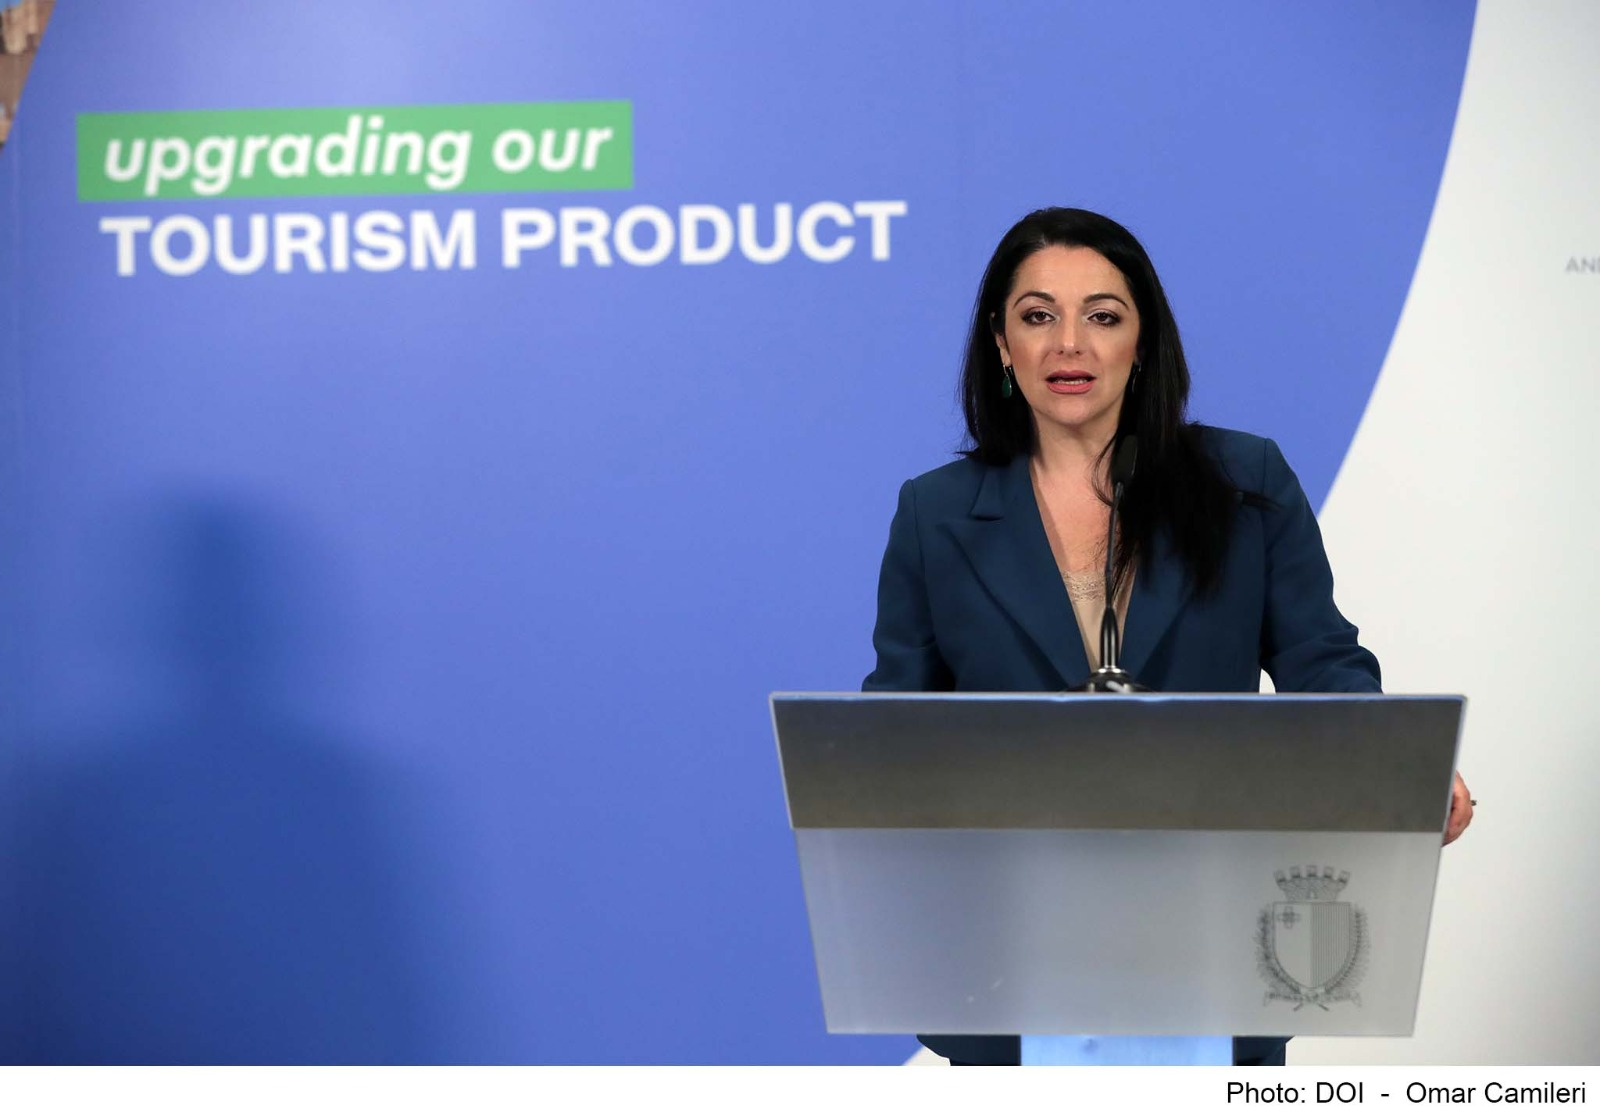 PRESS RELEASE BY THE MINISTRY FOR TOURISM AND CONSUMER PROTECTION €5 million investment: Launched e-learning training scheme for the tourism industry